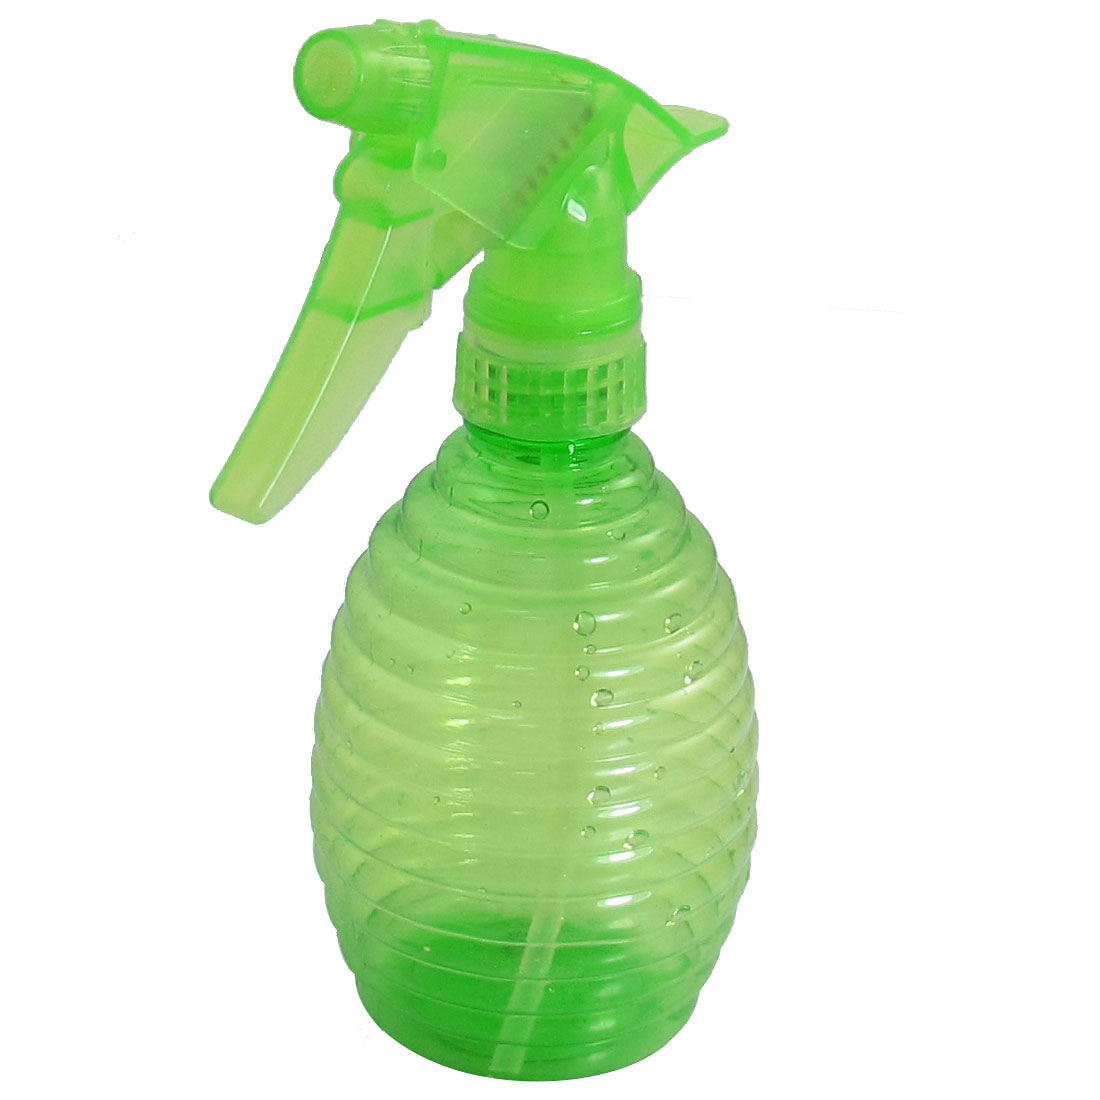 Green Plastic Tear Drop Shaped Hairdressing Trigger Spray Bottle 350ml